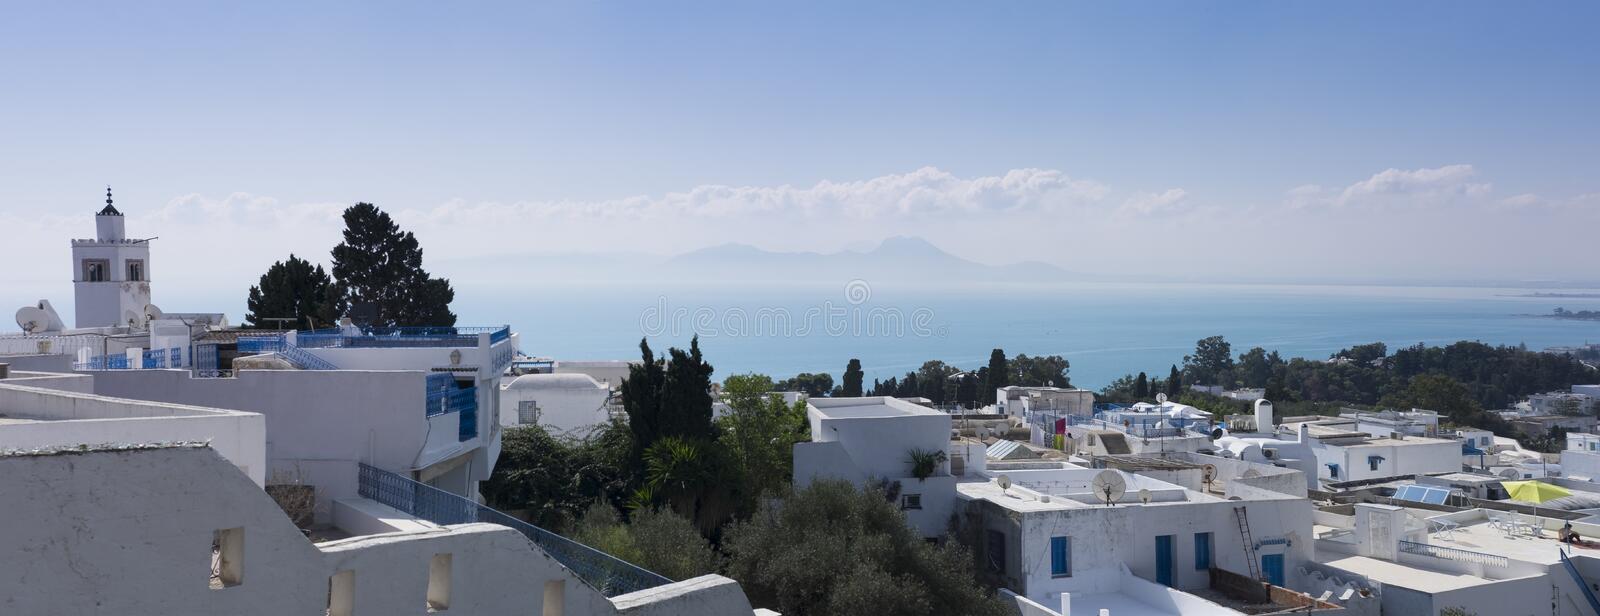 Sidi Bou Said. White house with blue windows and doors. royalty free stock images